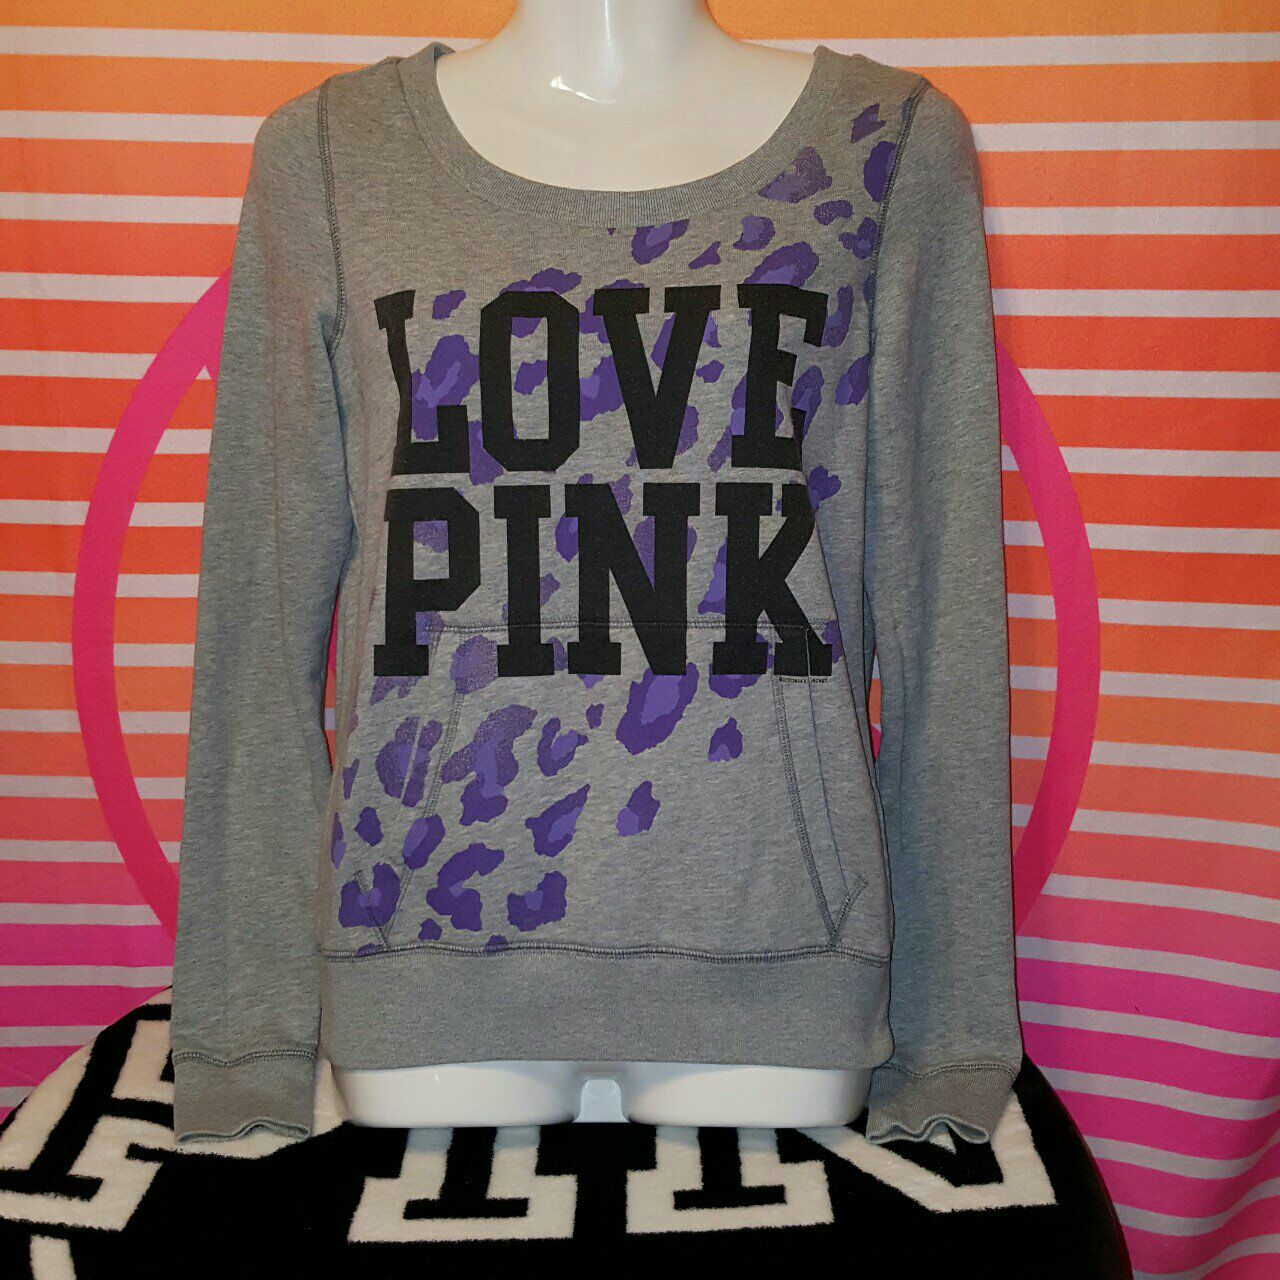 Xs vs pink sweater - Mercari: BUY & SELL THINGS YOU LOVE